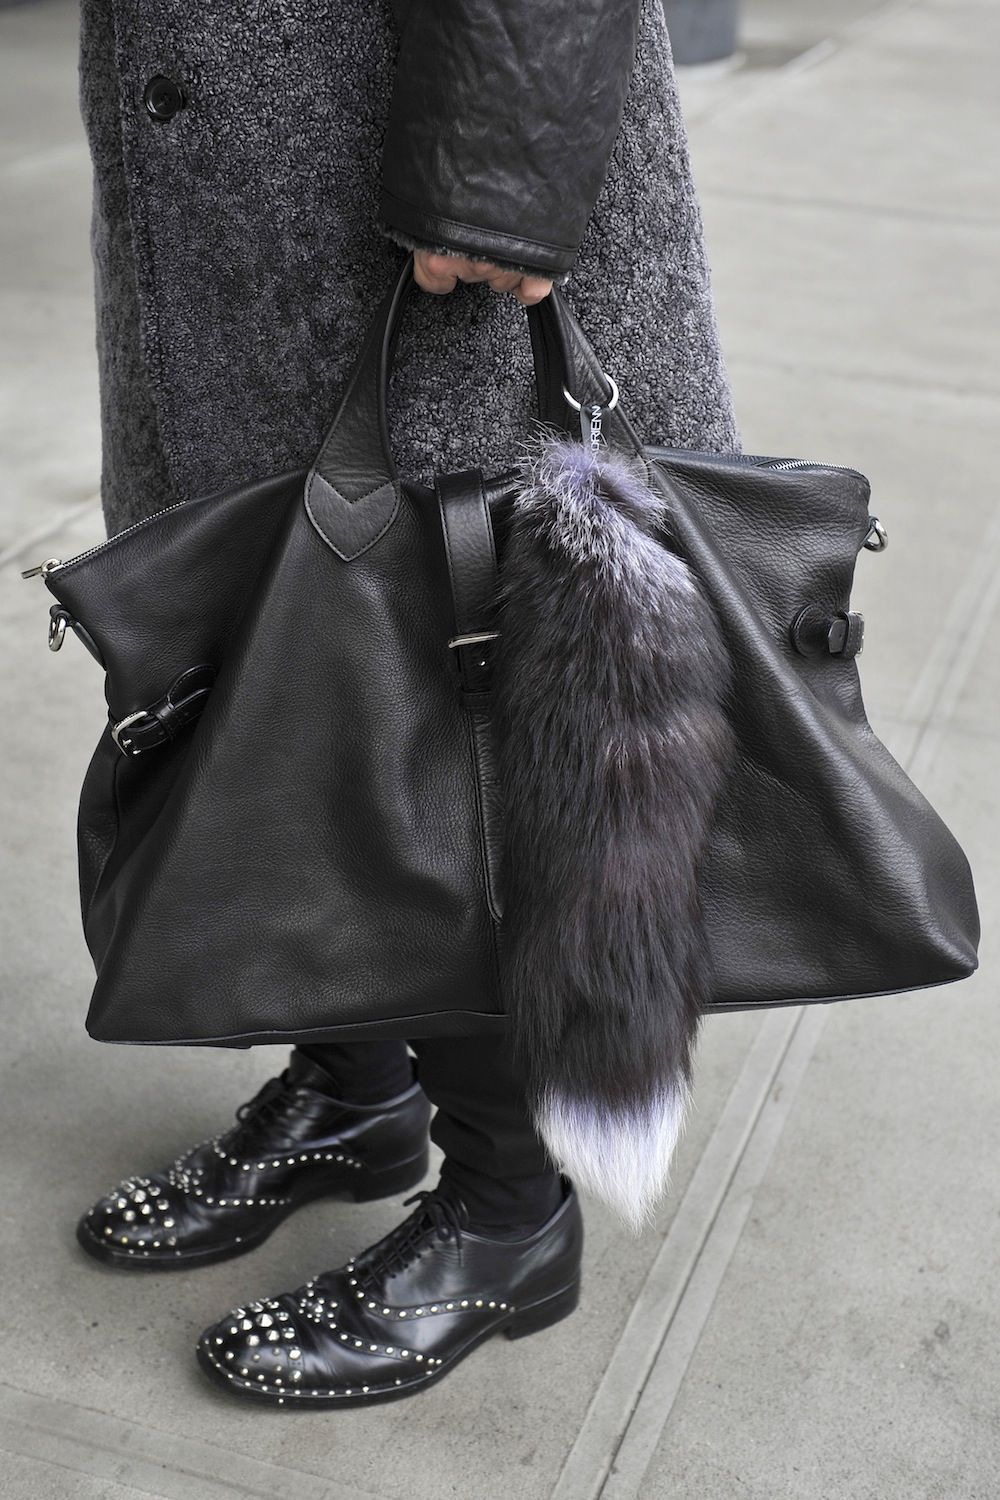 Kyle Anderson -Mulberry bag w/ fox tail and Prada shoes. #streetstyle #mulberrybag Kyle Anderson -Mulberry bag w/ fox tail and Prada shoes. #streetstyle #mulberrybag Kyle Anderson -Mulberry bag w/ fox tail and Prada shoes. #streetstyle #mulberrybag Kyle Anderson -Mulberry bag w/ fox tail and Prada shoes. #streetstyle #mulberrybag Kyle Anderson -Mulberry bag w/ fox tail and Prada shoes. #streetstyle #mulberrybag Kyle Anderson -Mulberry bag w/ fox tail and Prada shoes. #streetstyle #mulberrybag Ky #mulberrybag